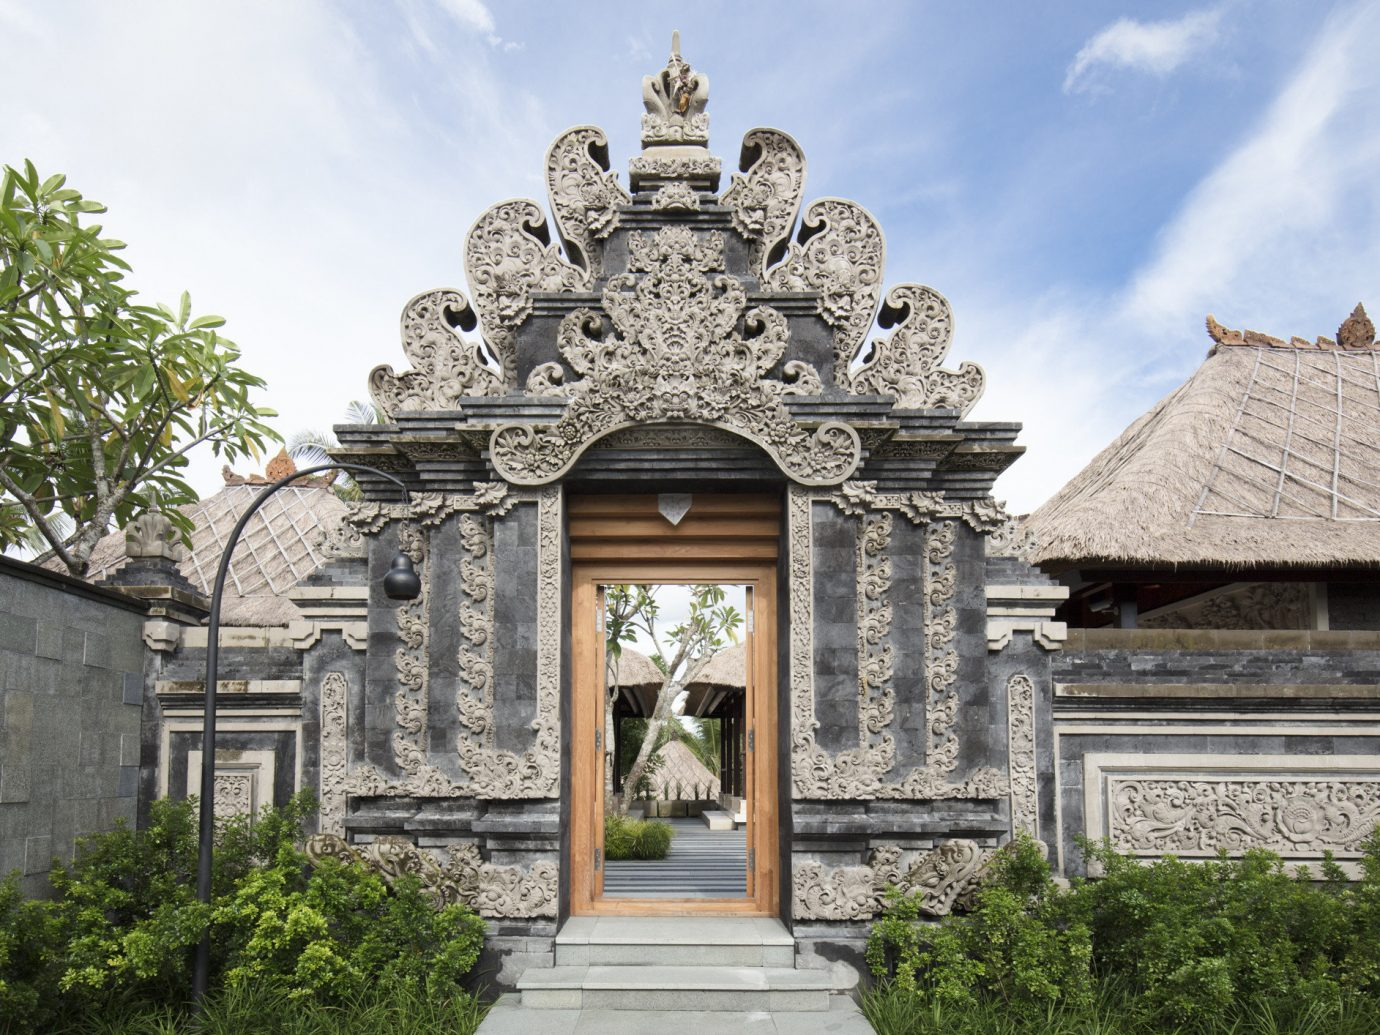 Health + Wellness Hotels historic site ancient history place of worship estate temple building sky facade tree wat palace tourist attraction château mansion monument classical architecture archaeological site symmetry statue hindu temple